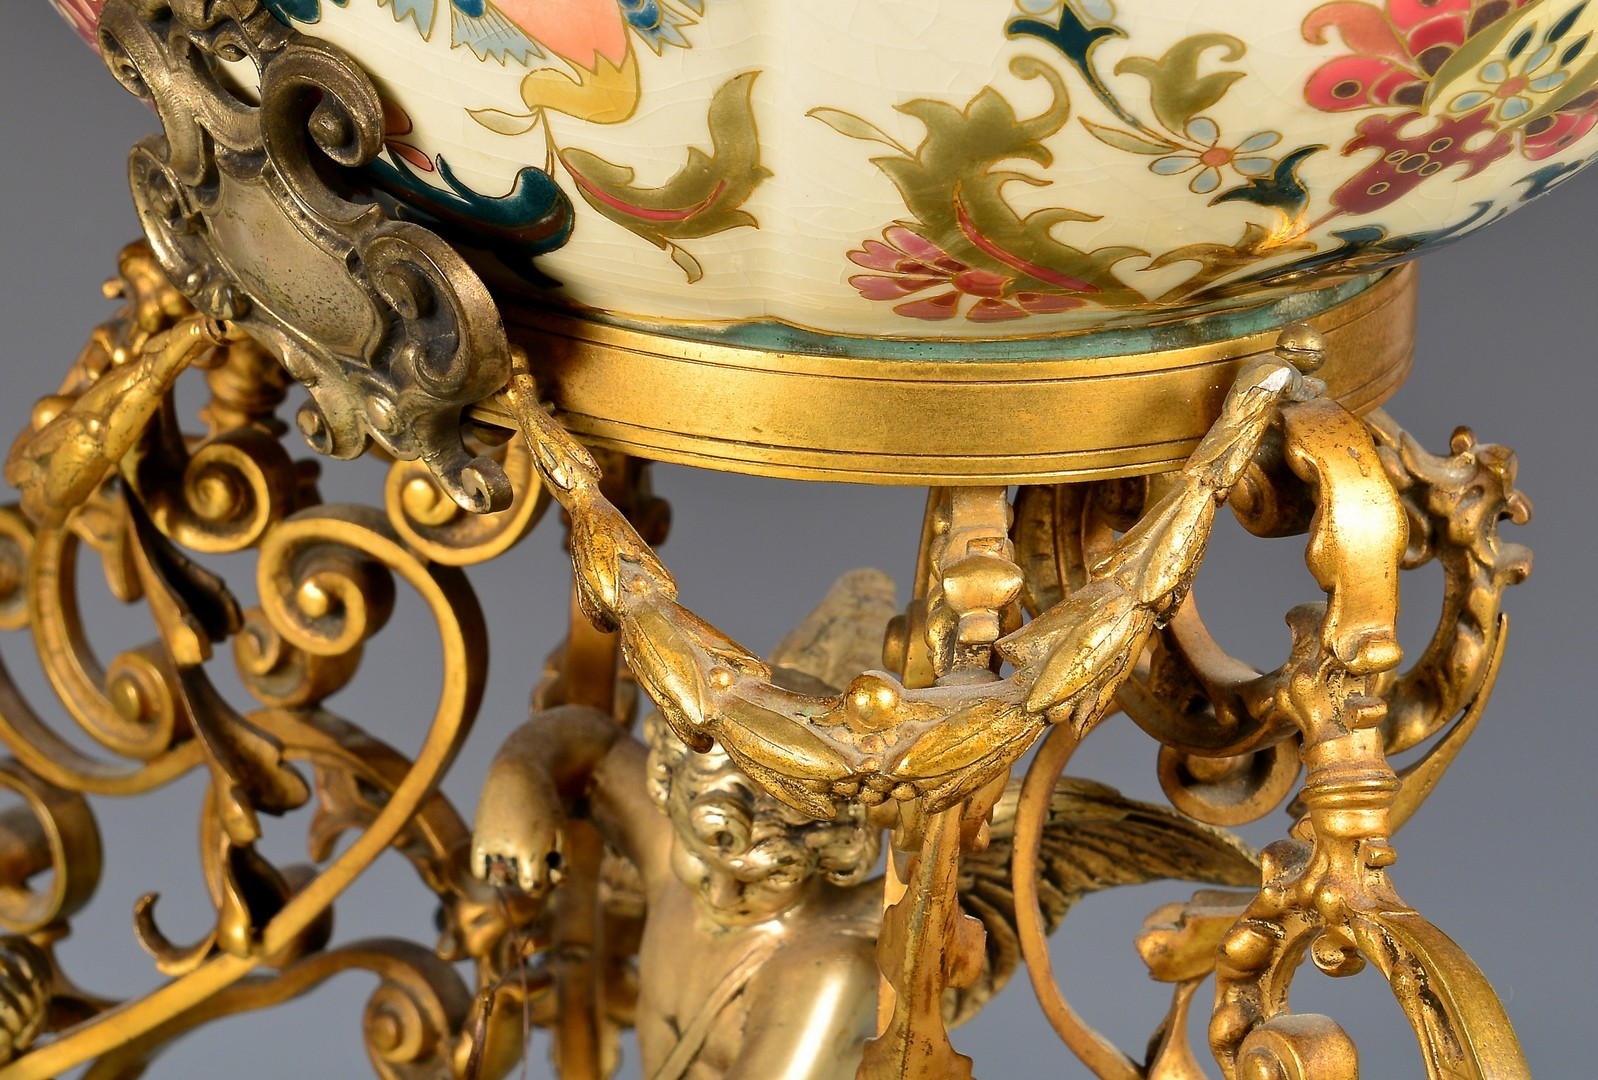 Lot 715: Zsolnay Ceramic & Gilt Centerpiece